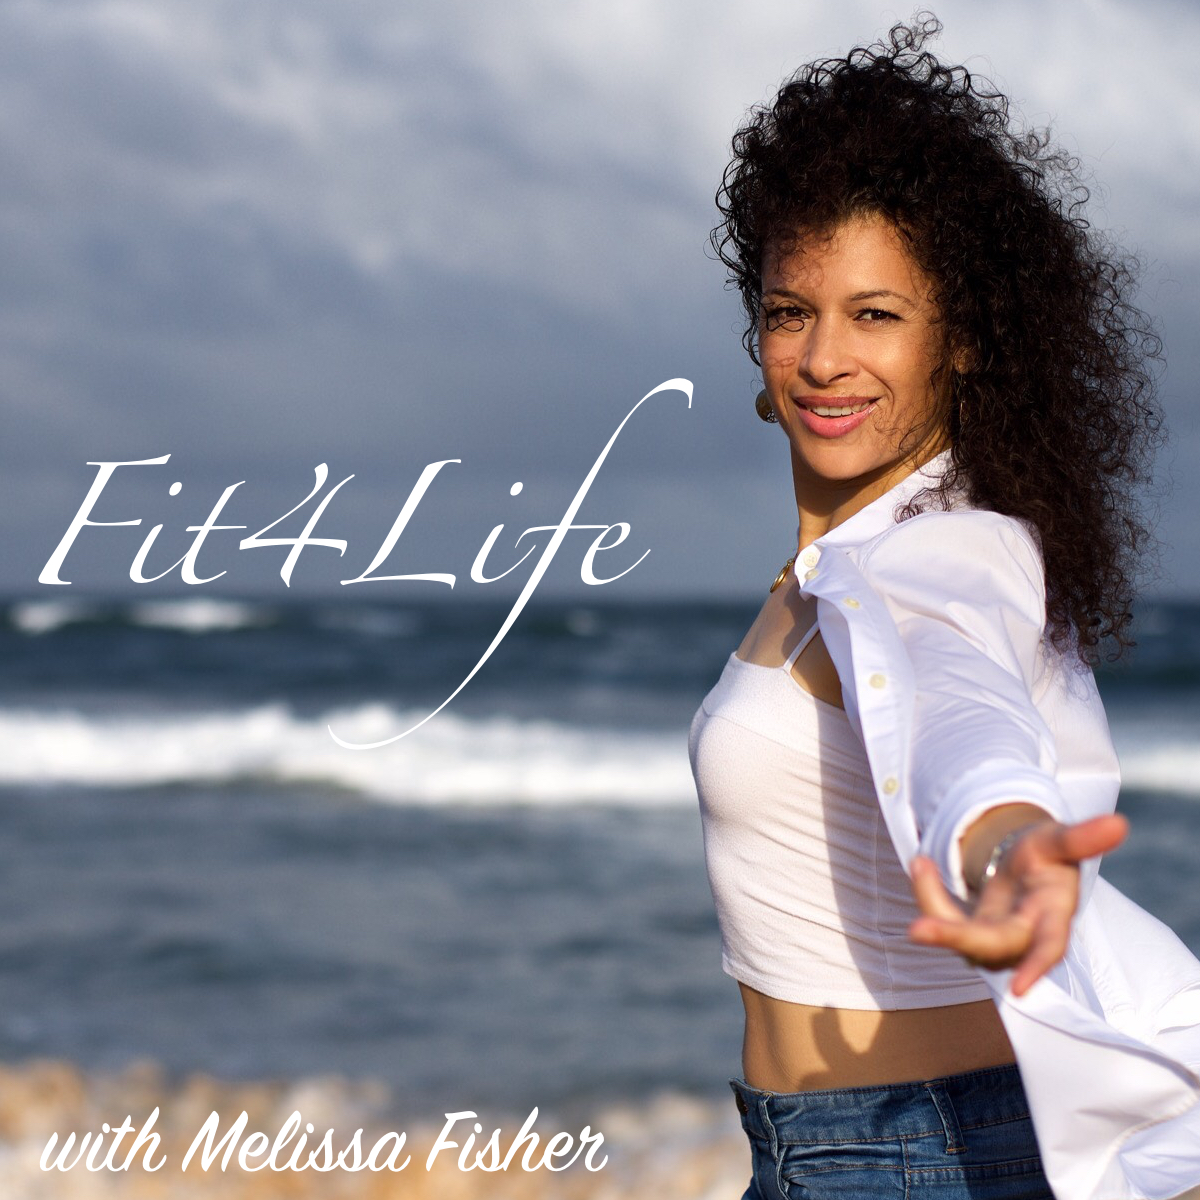 Fit4Life - with Melissa Fisher